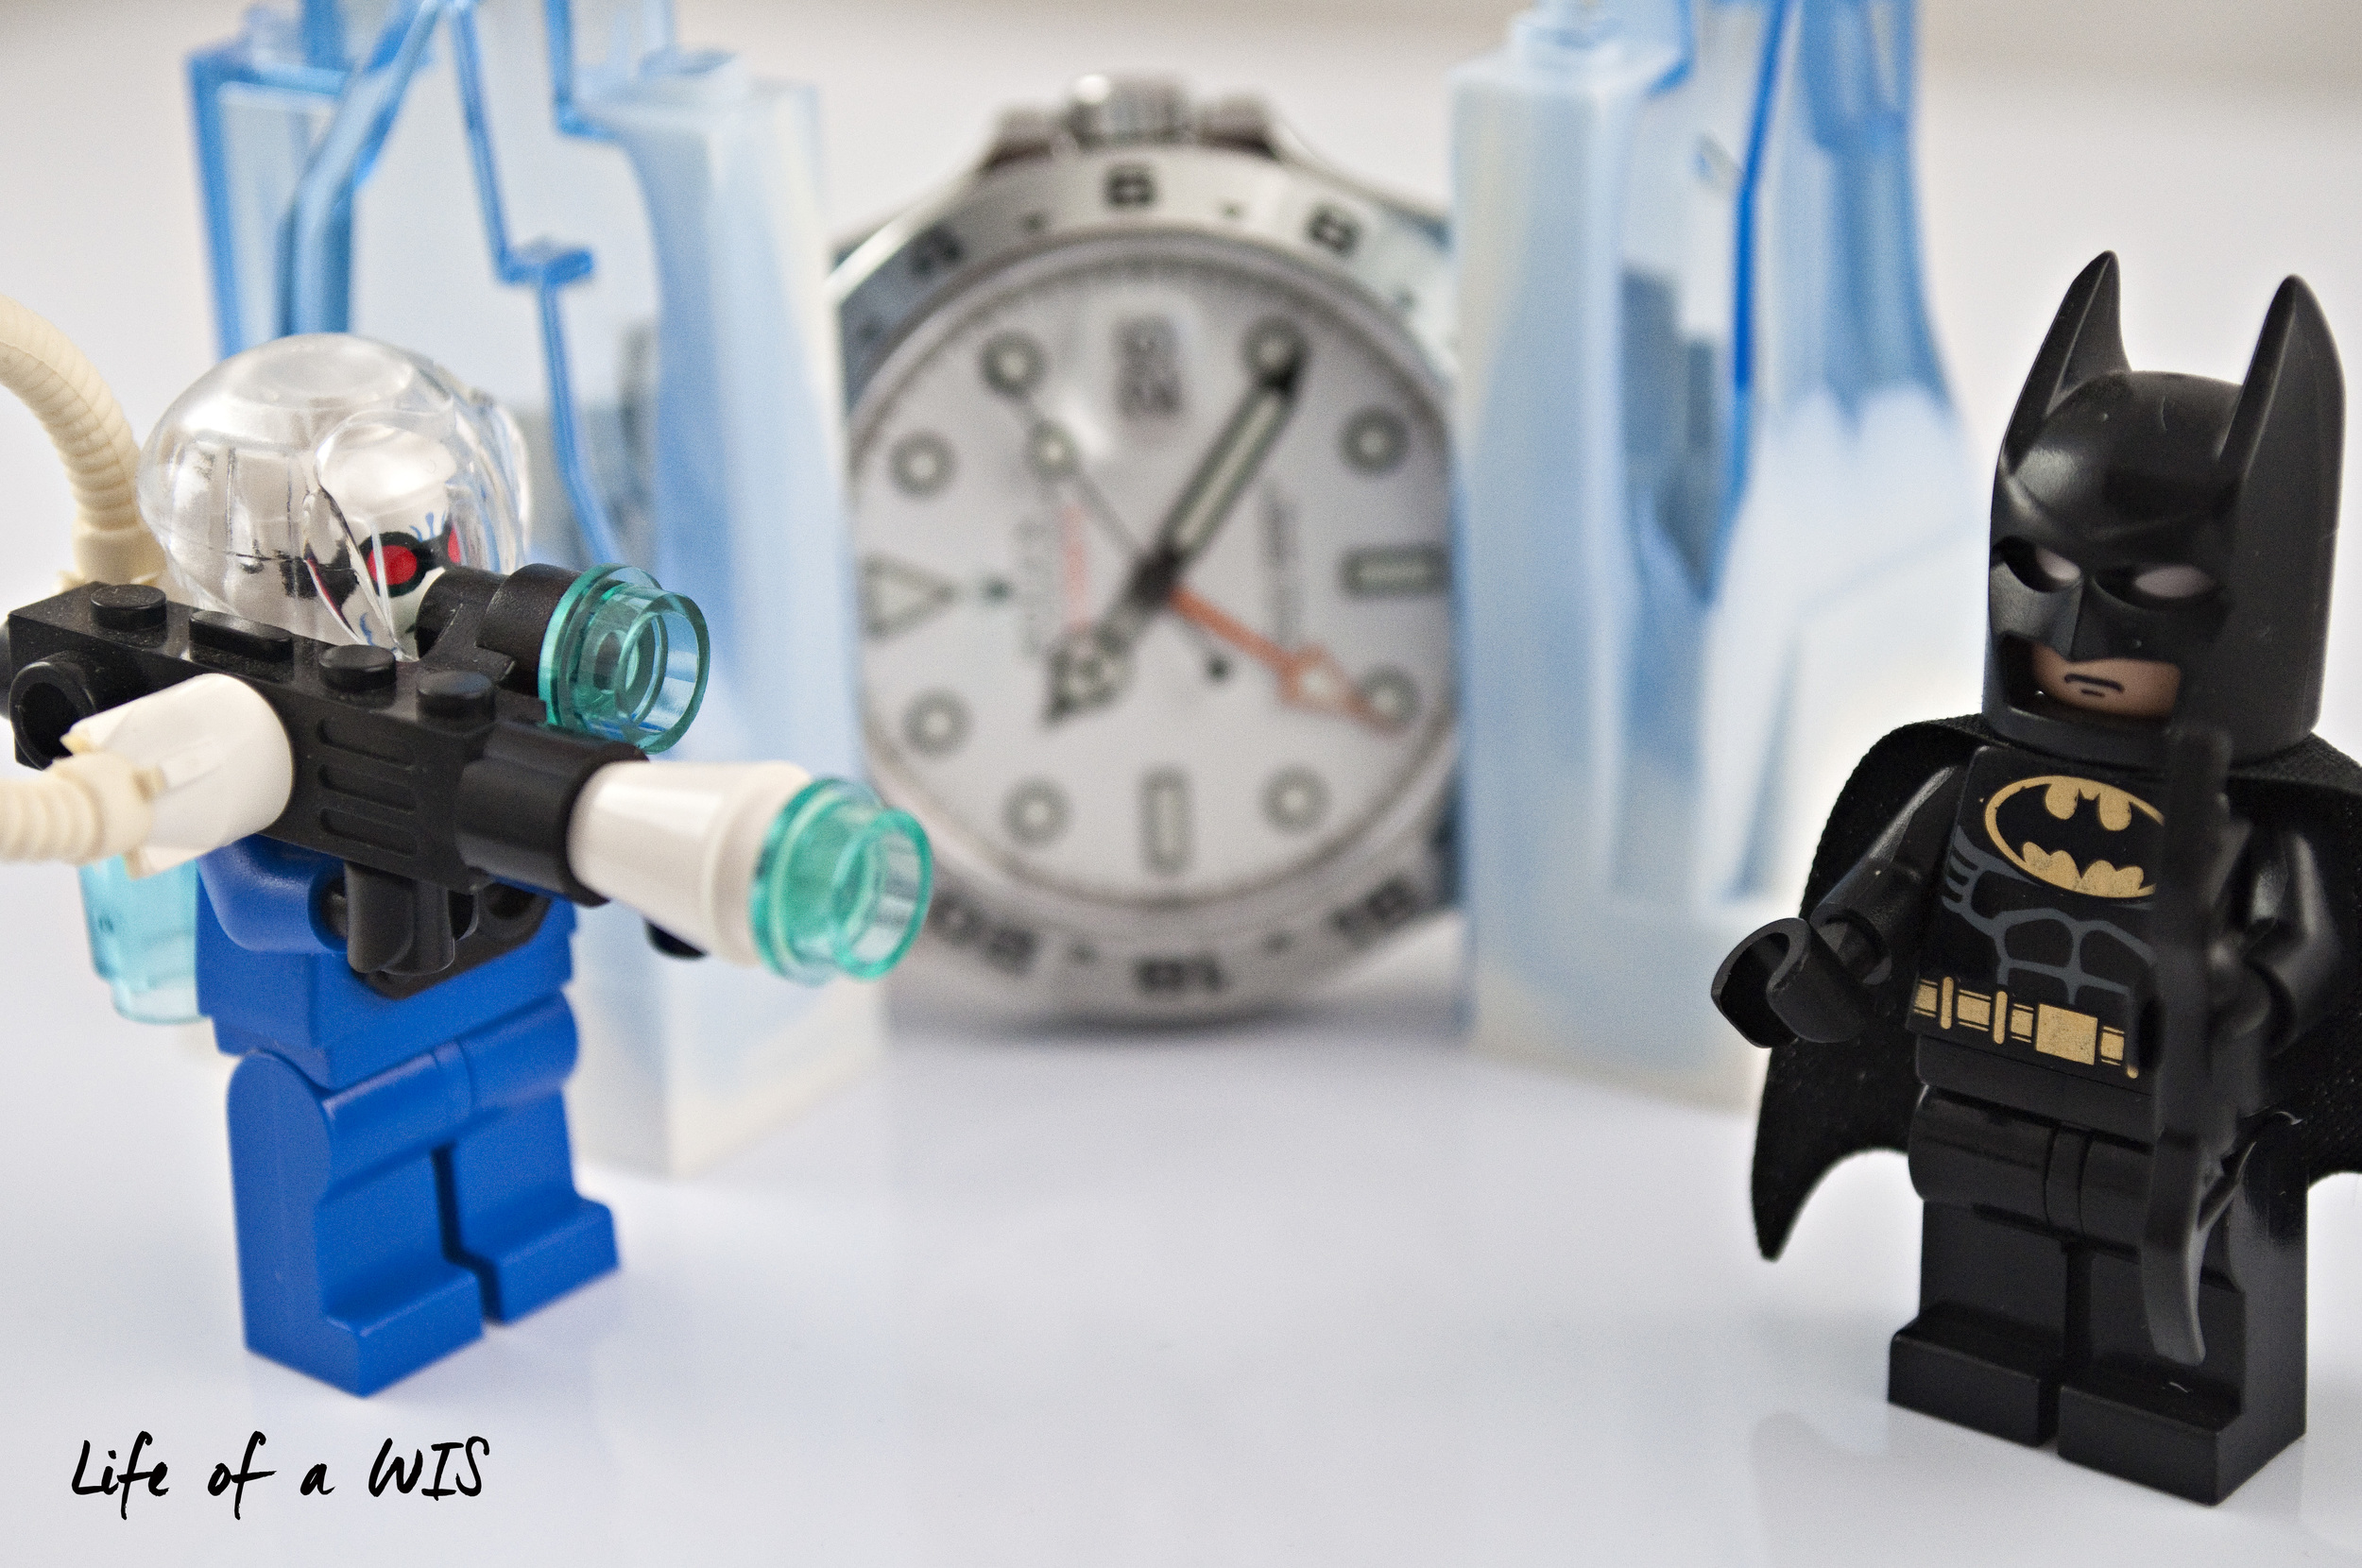 Can Batman save Rolex from Mr. Freeze?